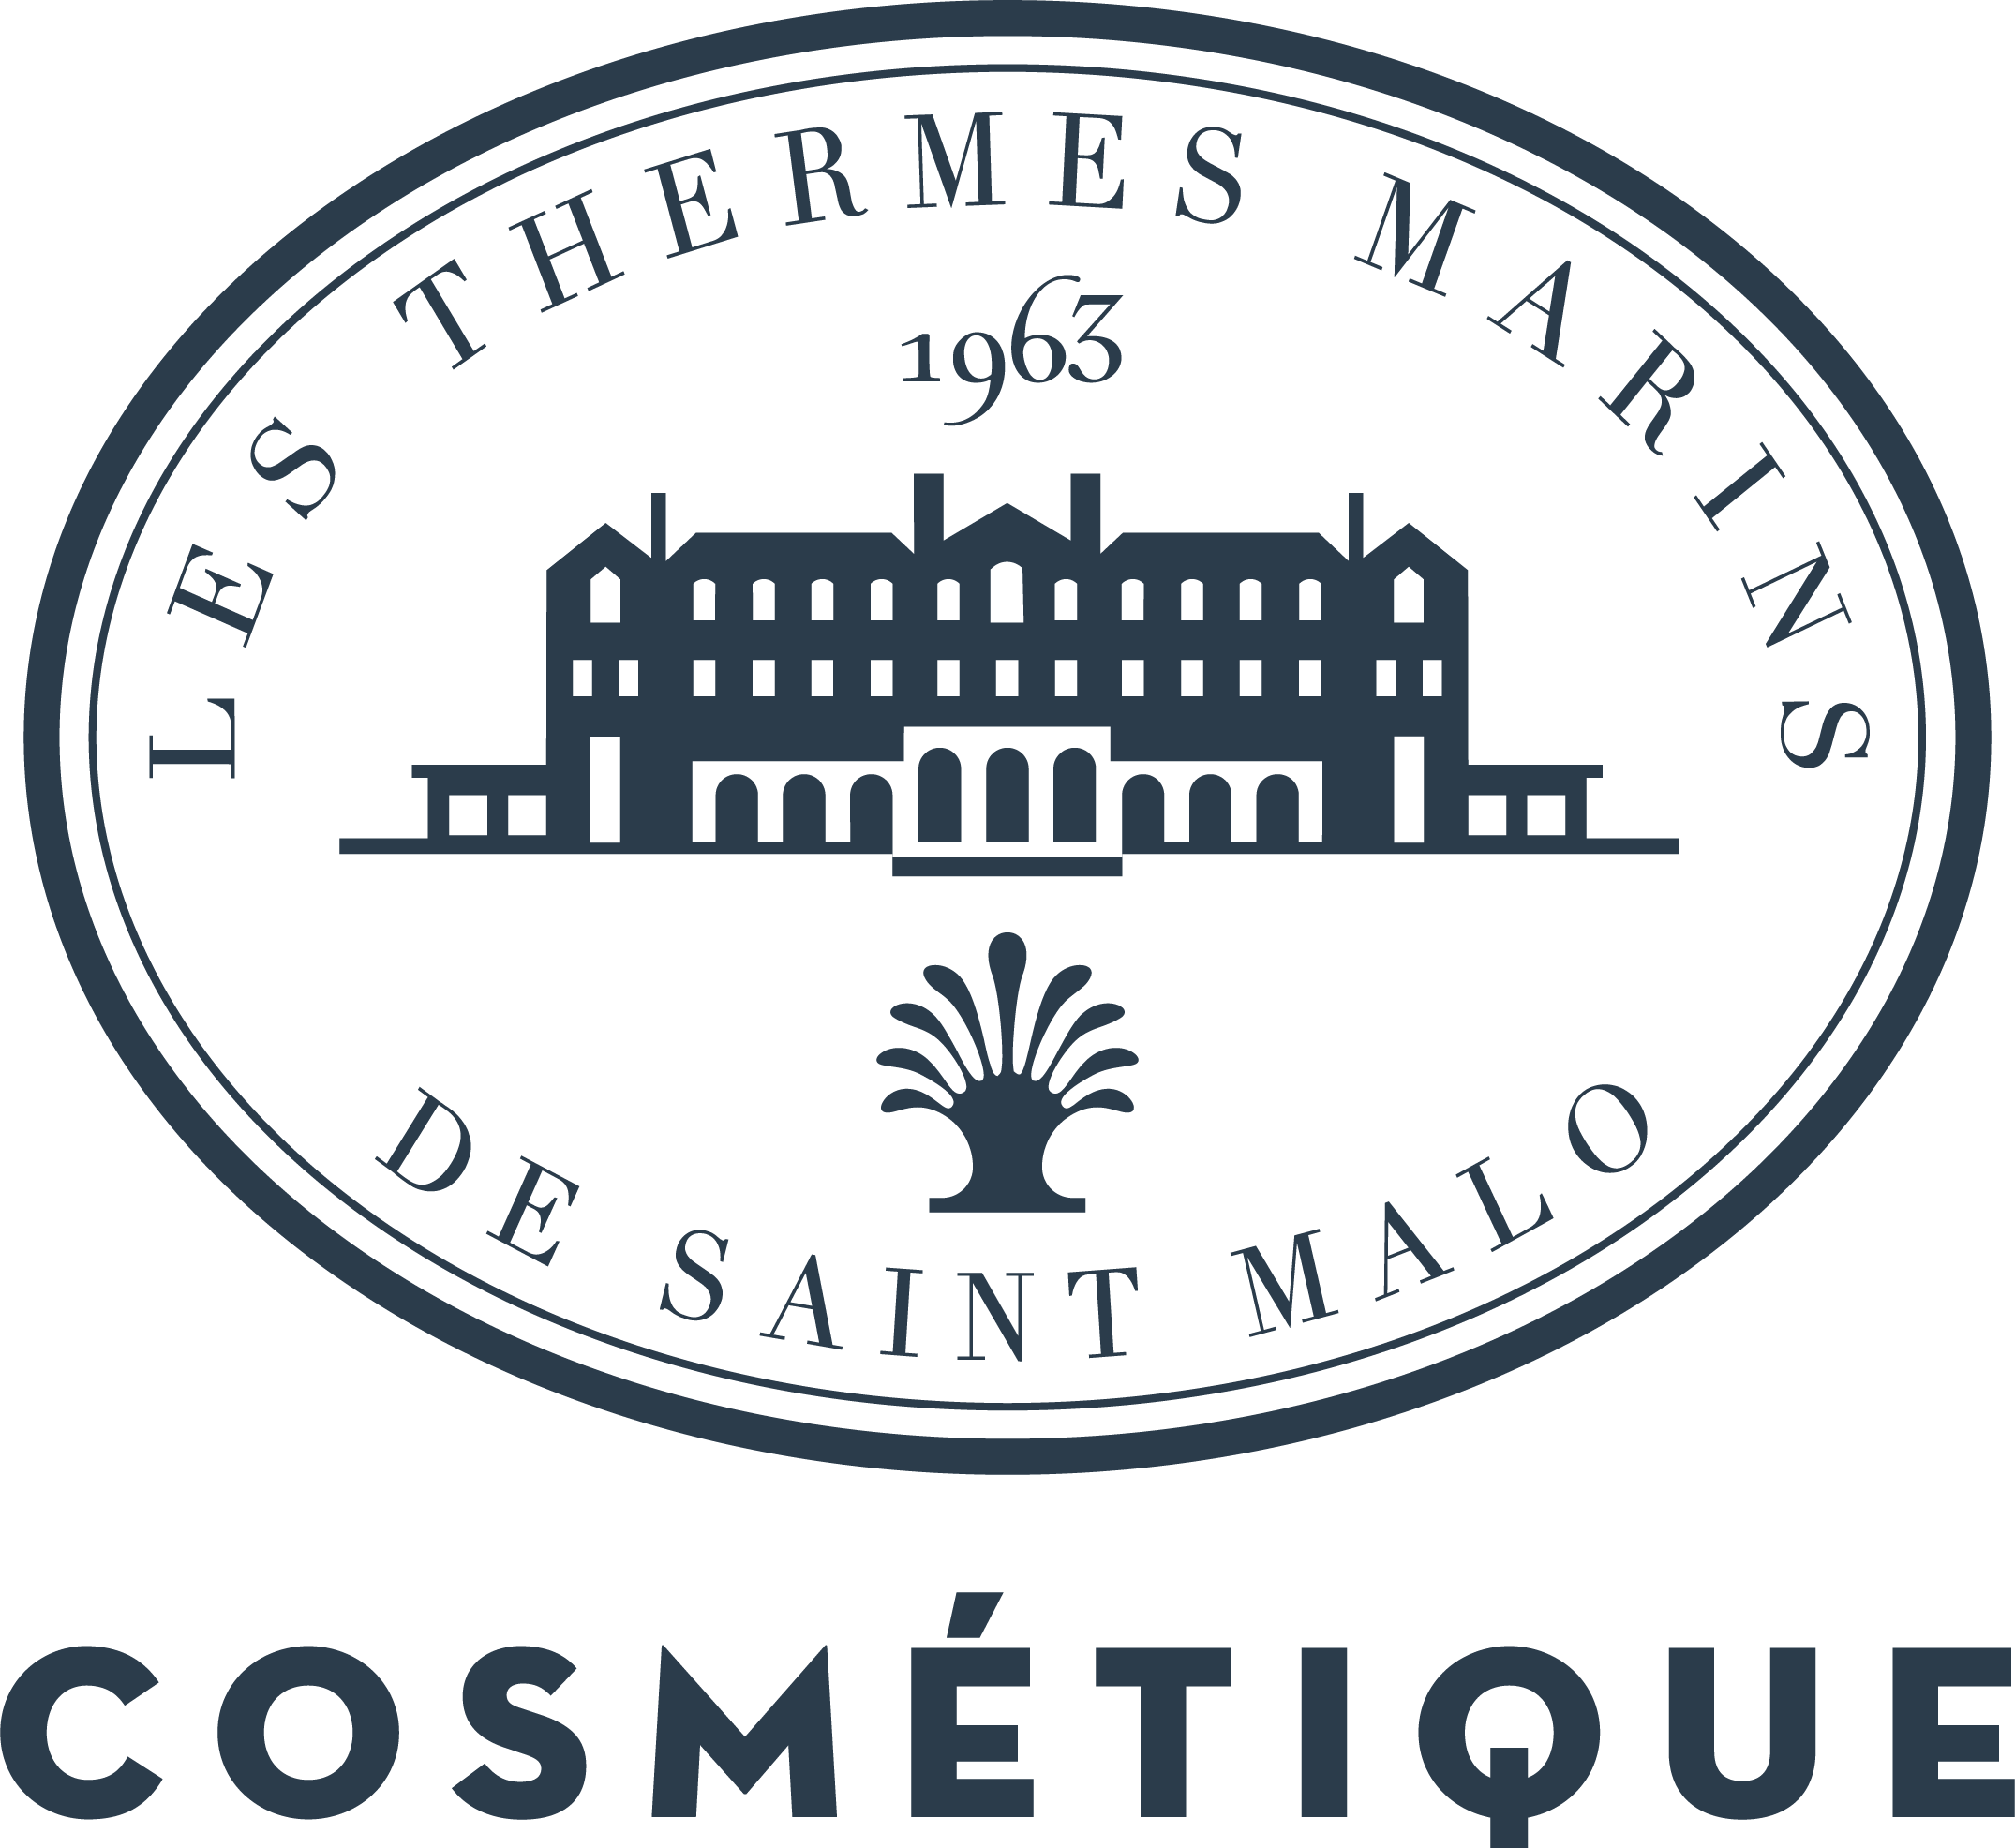 beautysecrets.agency presents Les Thermes Marins de Saint-Malo